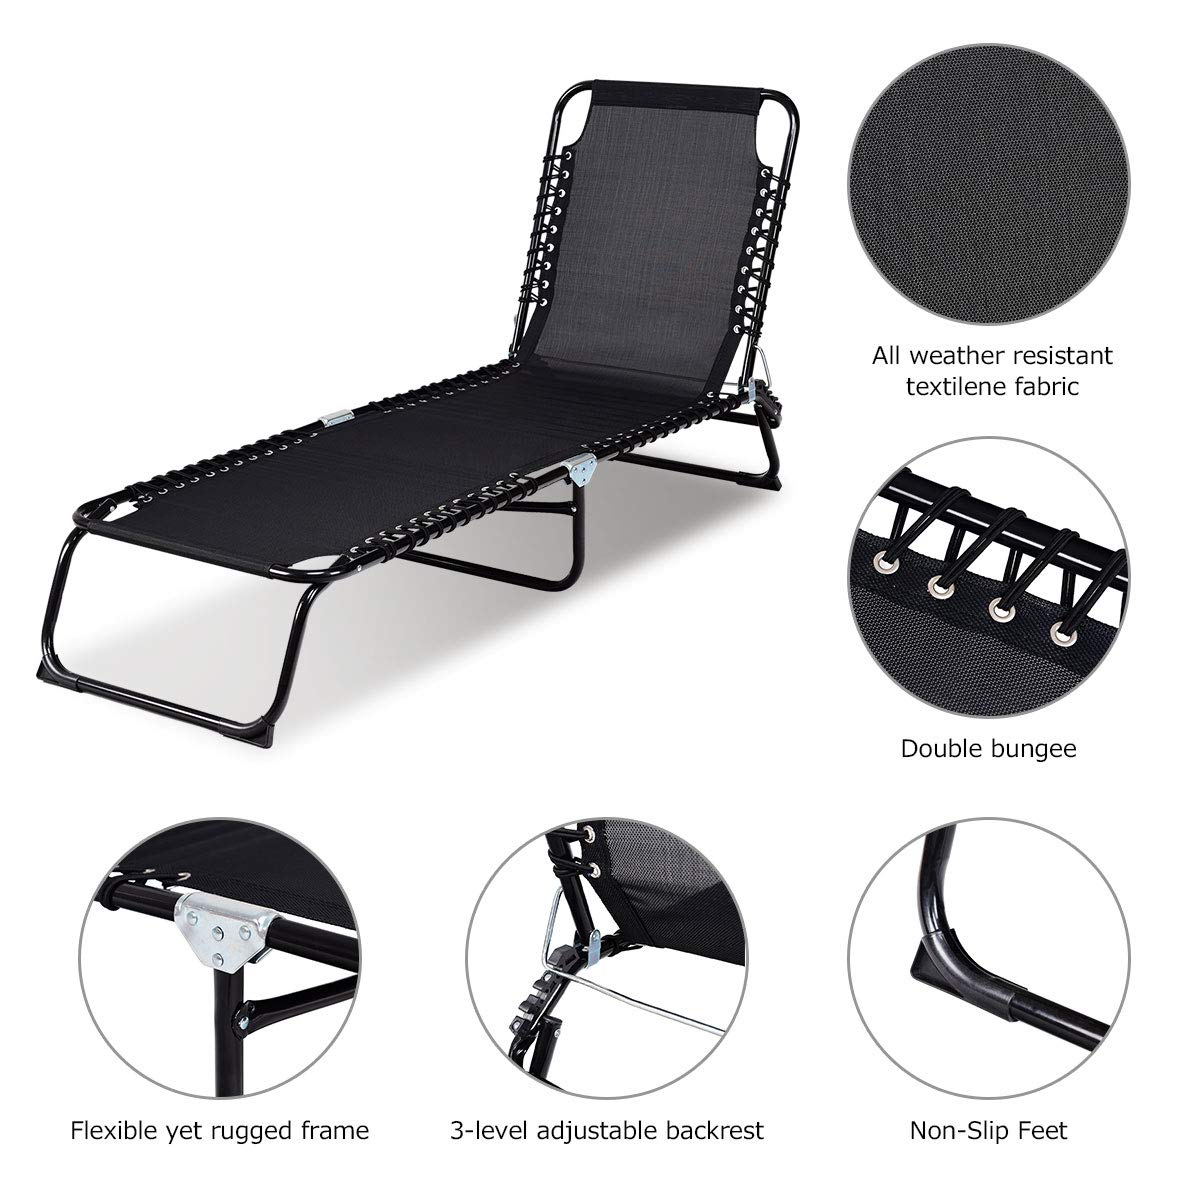 Amazon.com: GiantexAdjustable - Silla reclinable de chaise ...